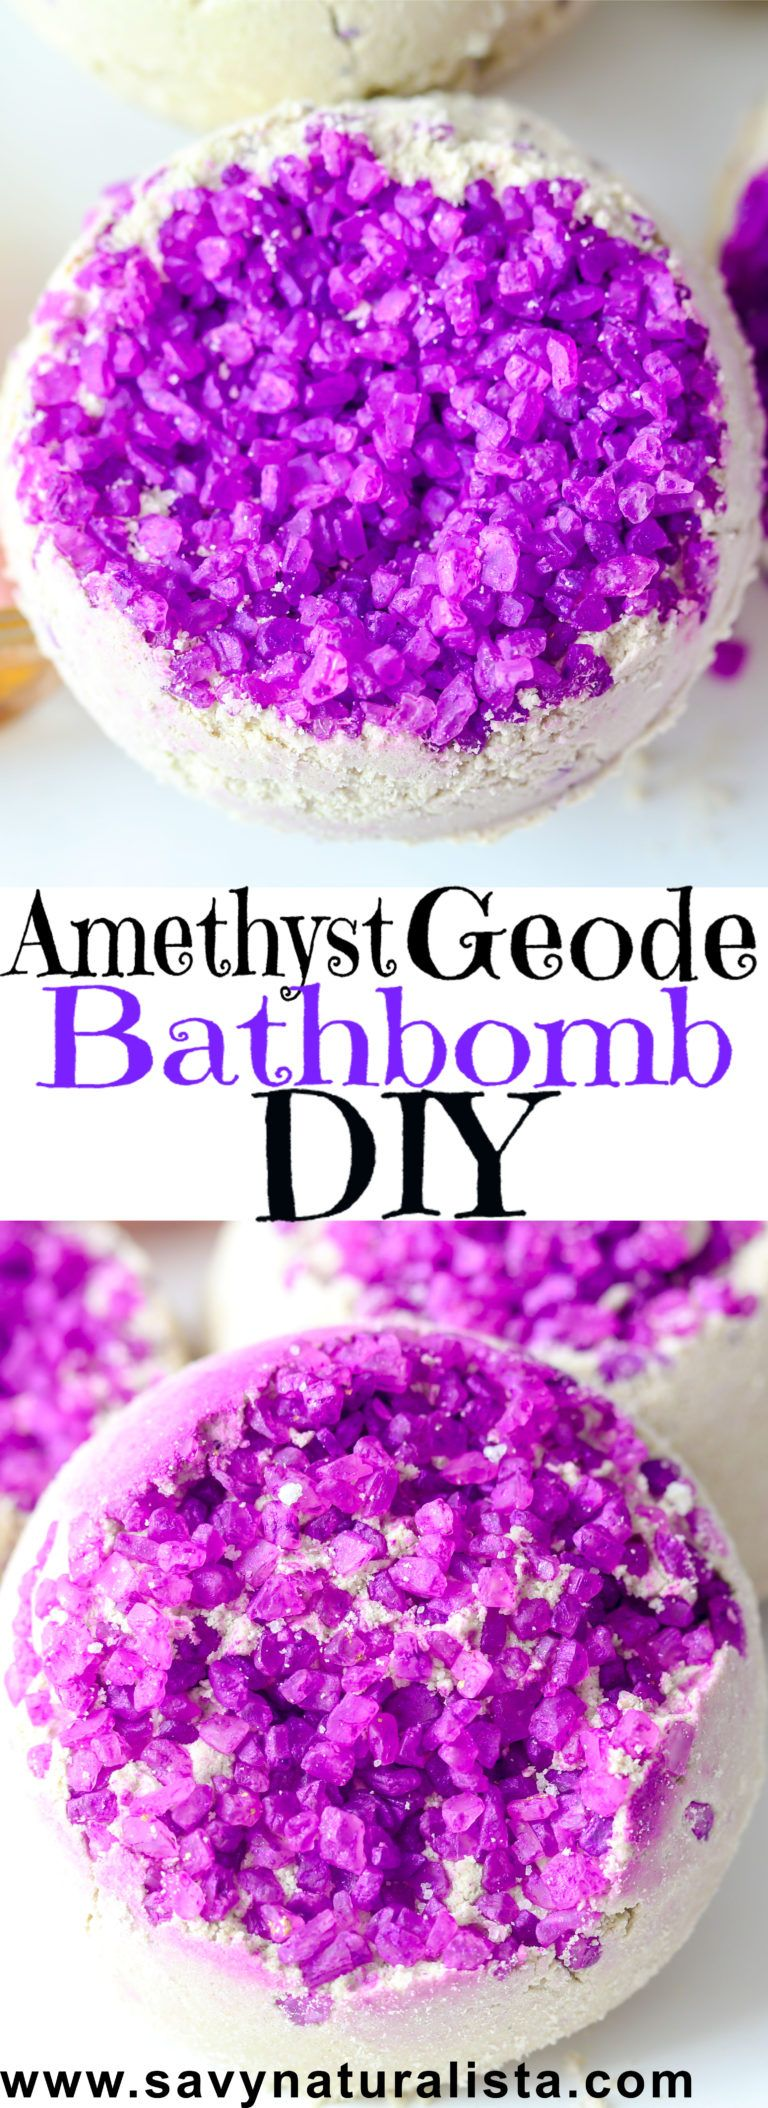 Amethyst Geode Bath Bomb is made using large crystal sea salts made with bentonite clay to detoxify and relax the body while clearing the mind. This #bathbomb is part of a birthstone collection that Shundara approved!